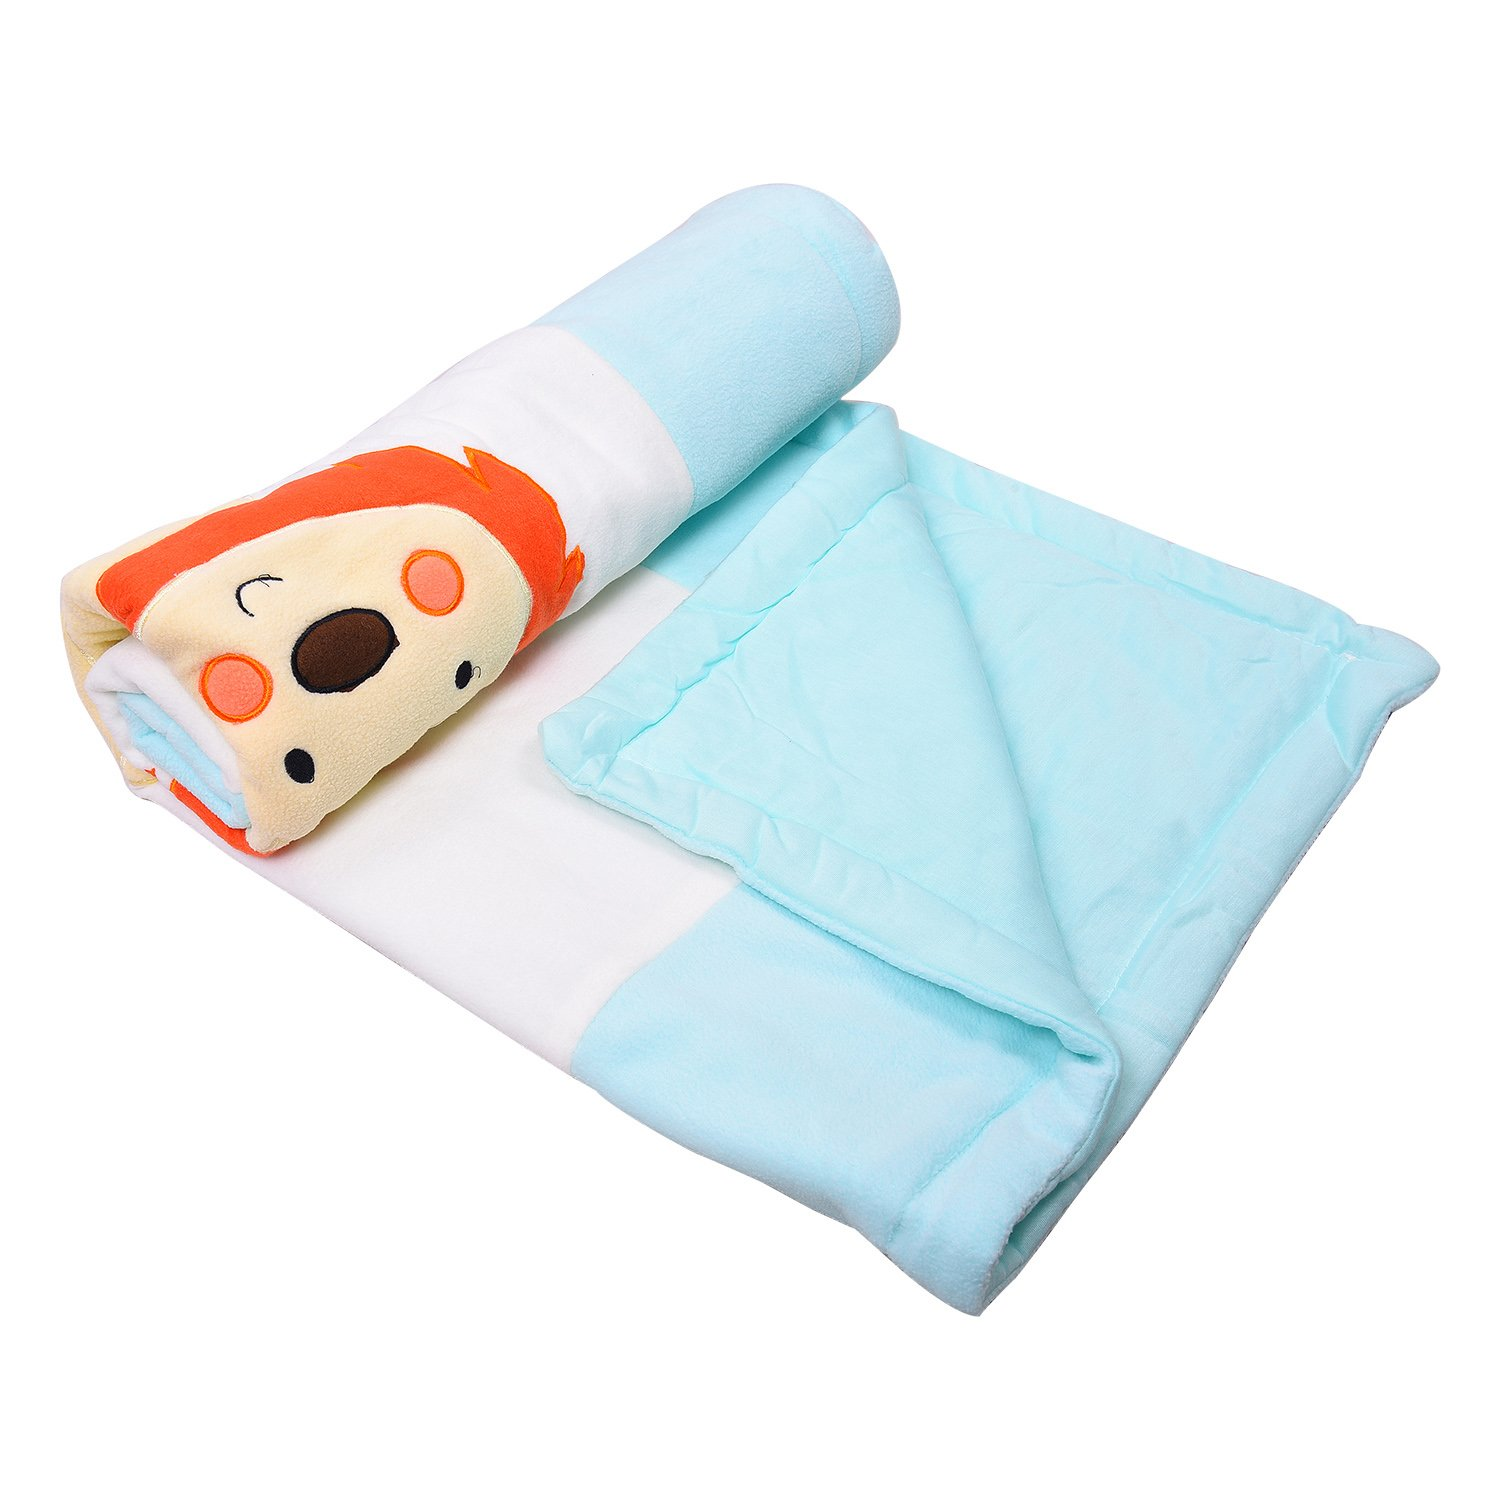 "132 Premium Soft Cozy Fleece Blanket for Newborn | Receiving Blanket, Crib, Stroller, Travel, Outdoor (34"" x 41"")"